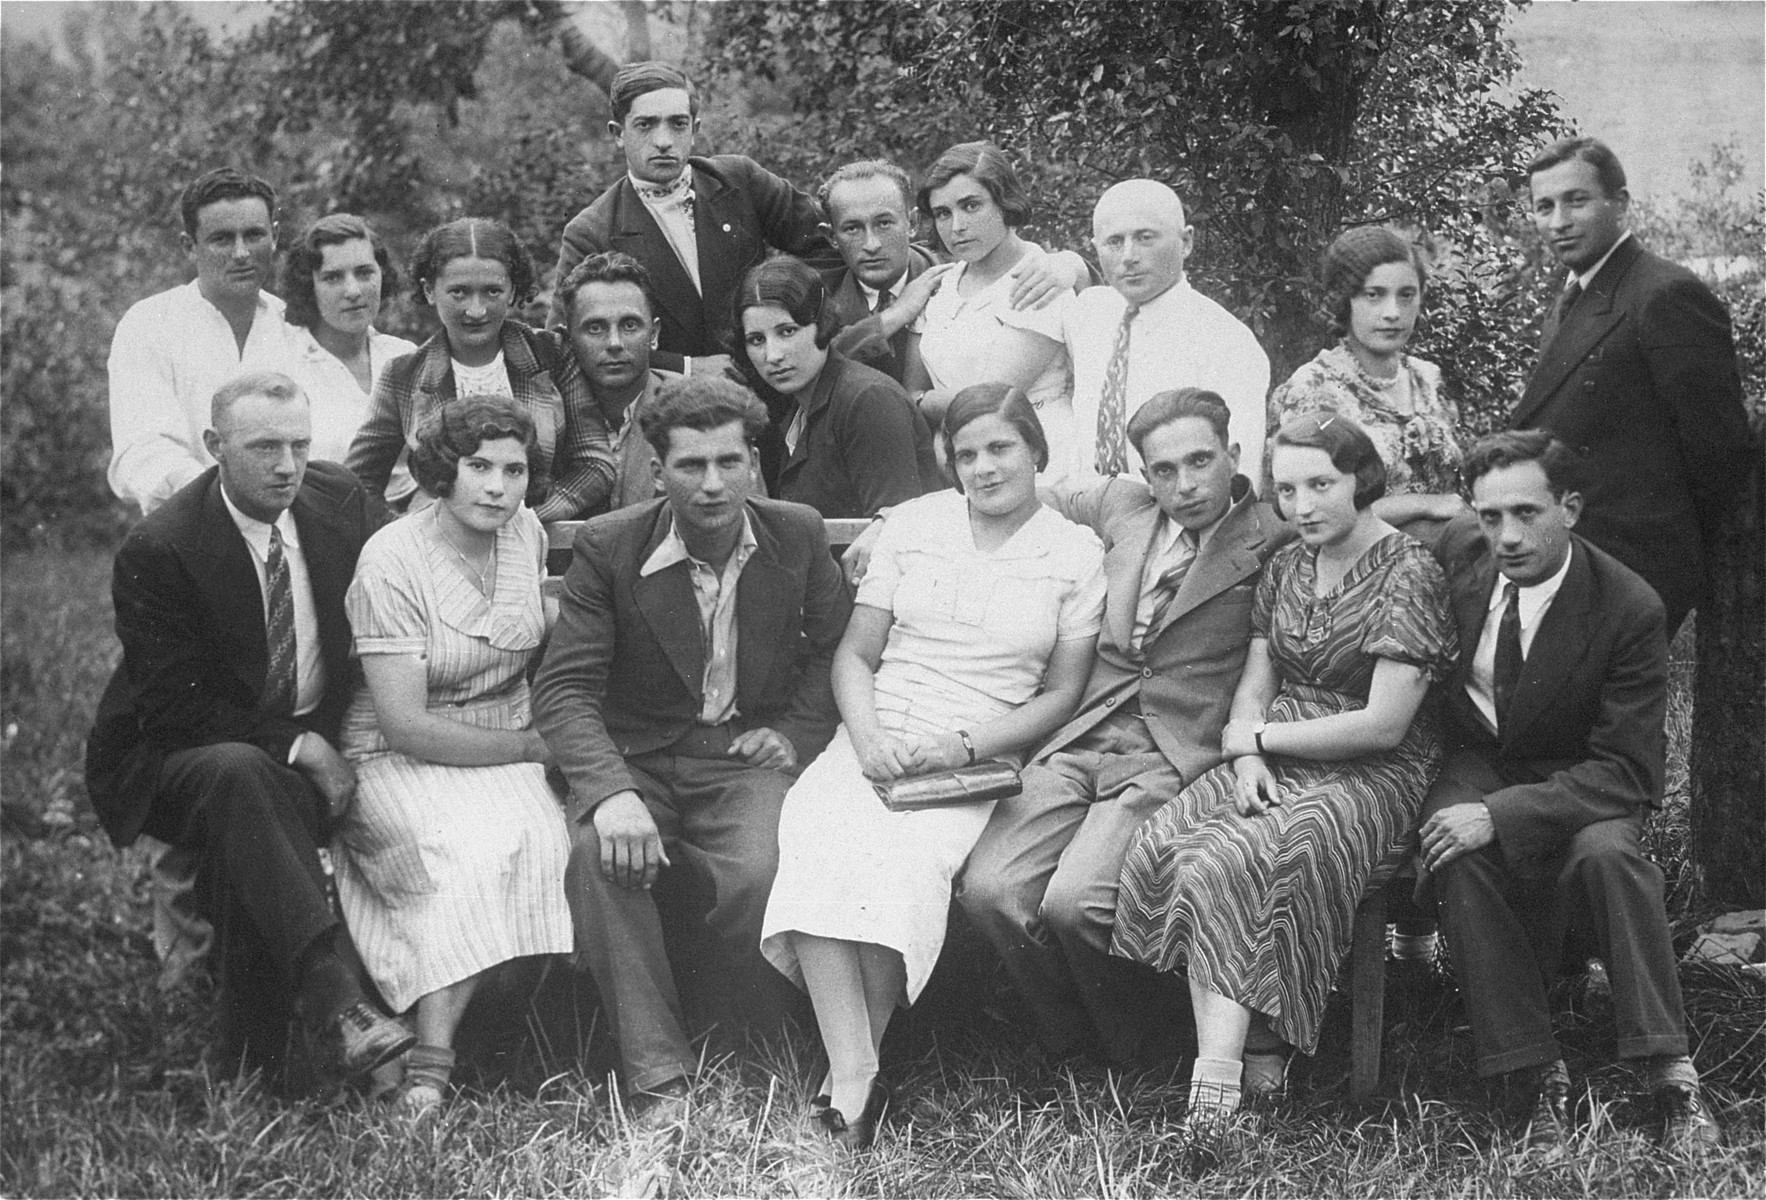 Group portrait of young Jewish men and women in Lithuania.  Pictured in the back row, center, is the donor's father, Eliezer Kaplan.